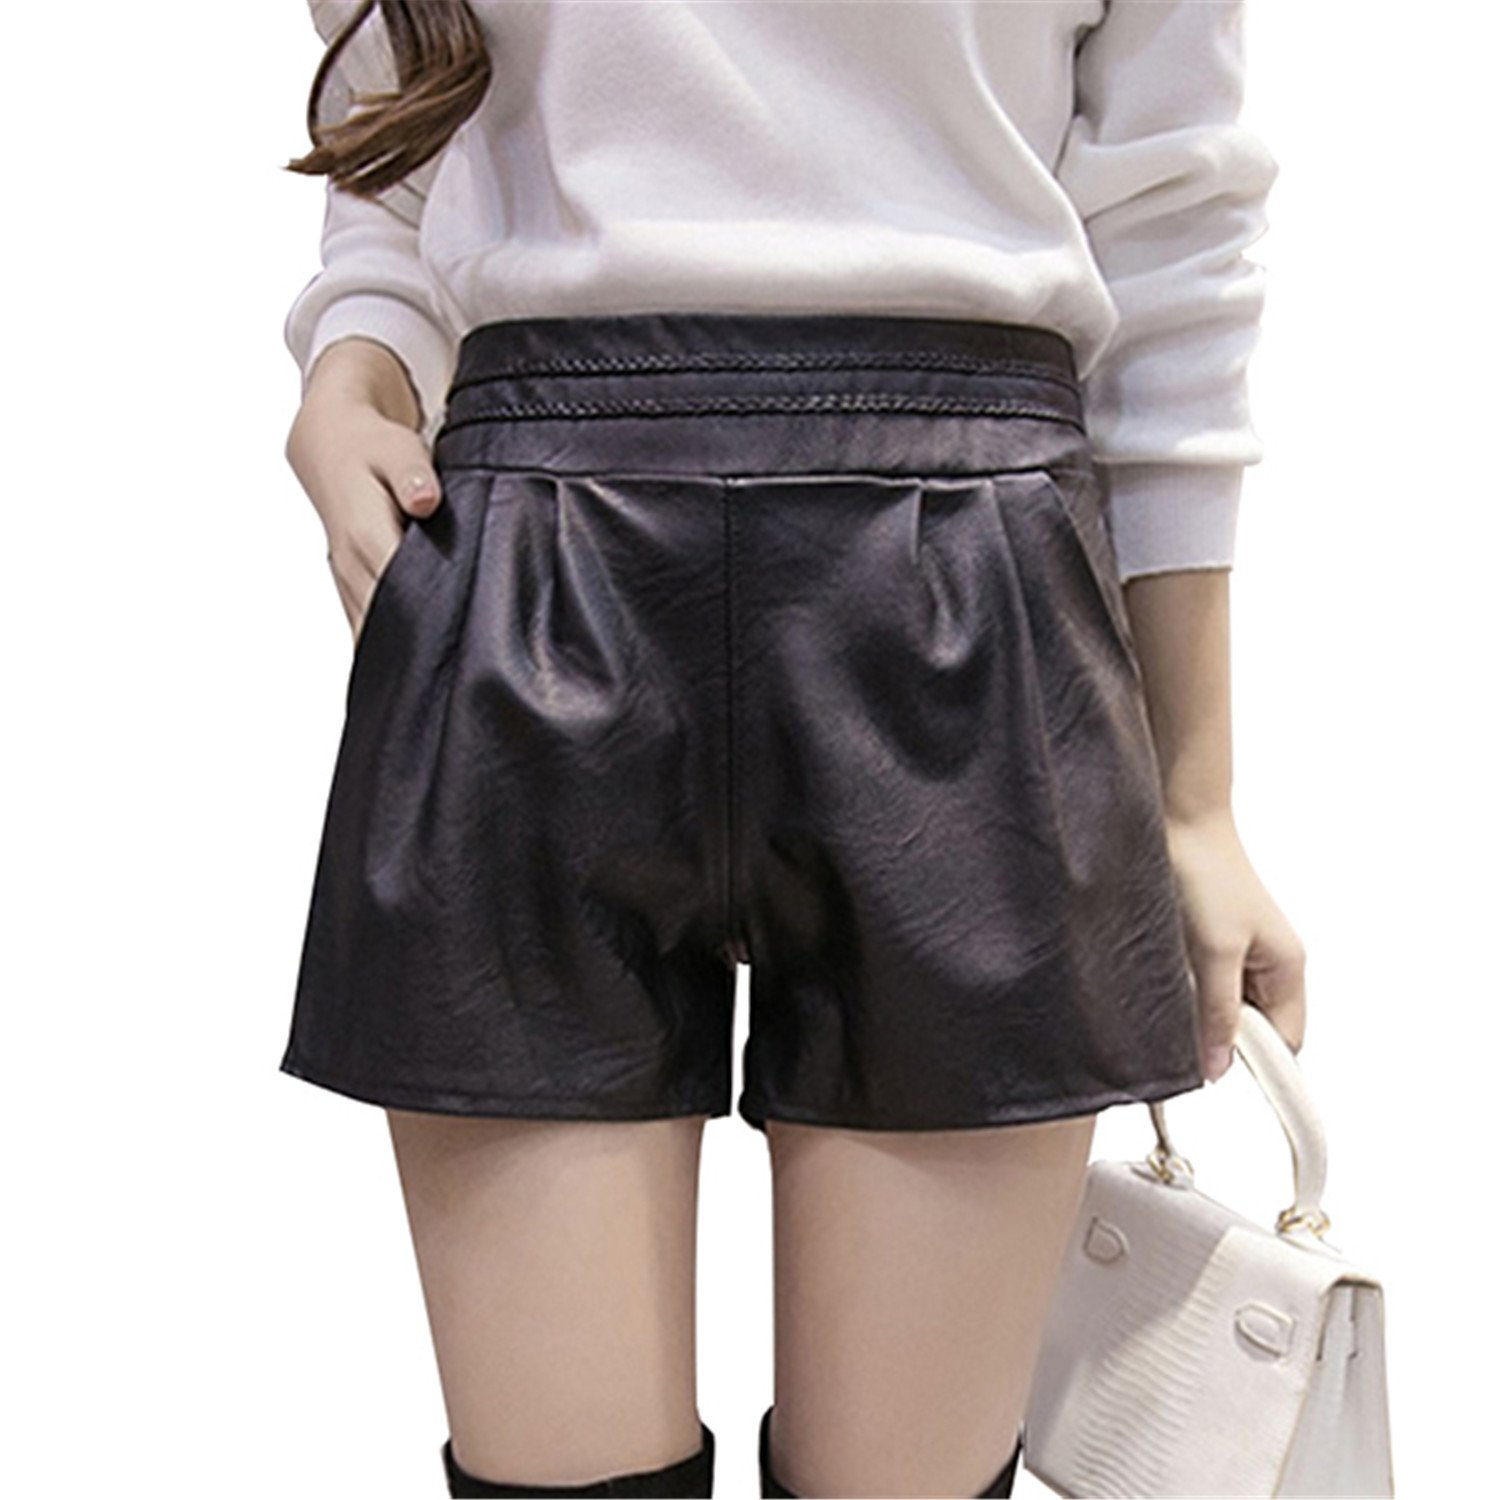 Ivan Johns 2018 Women Elastic Waist PU Leather Black Shorts Female Celebrity Same Loose Fashion Women Casual Shorts Plus Size